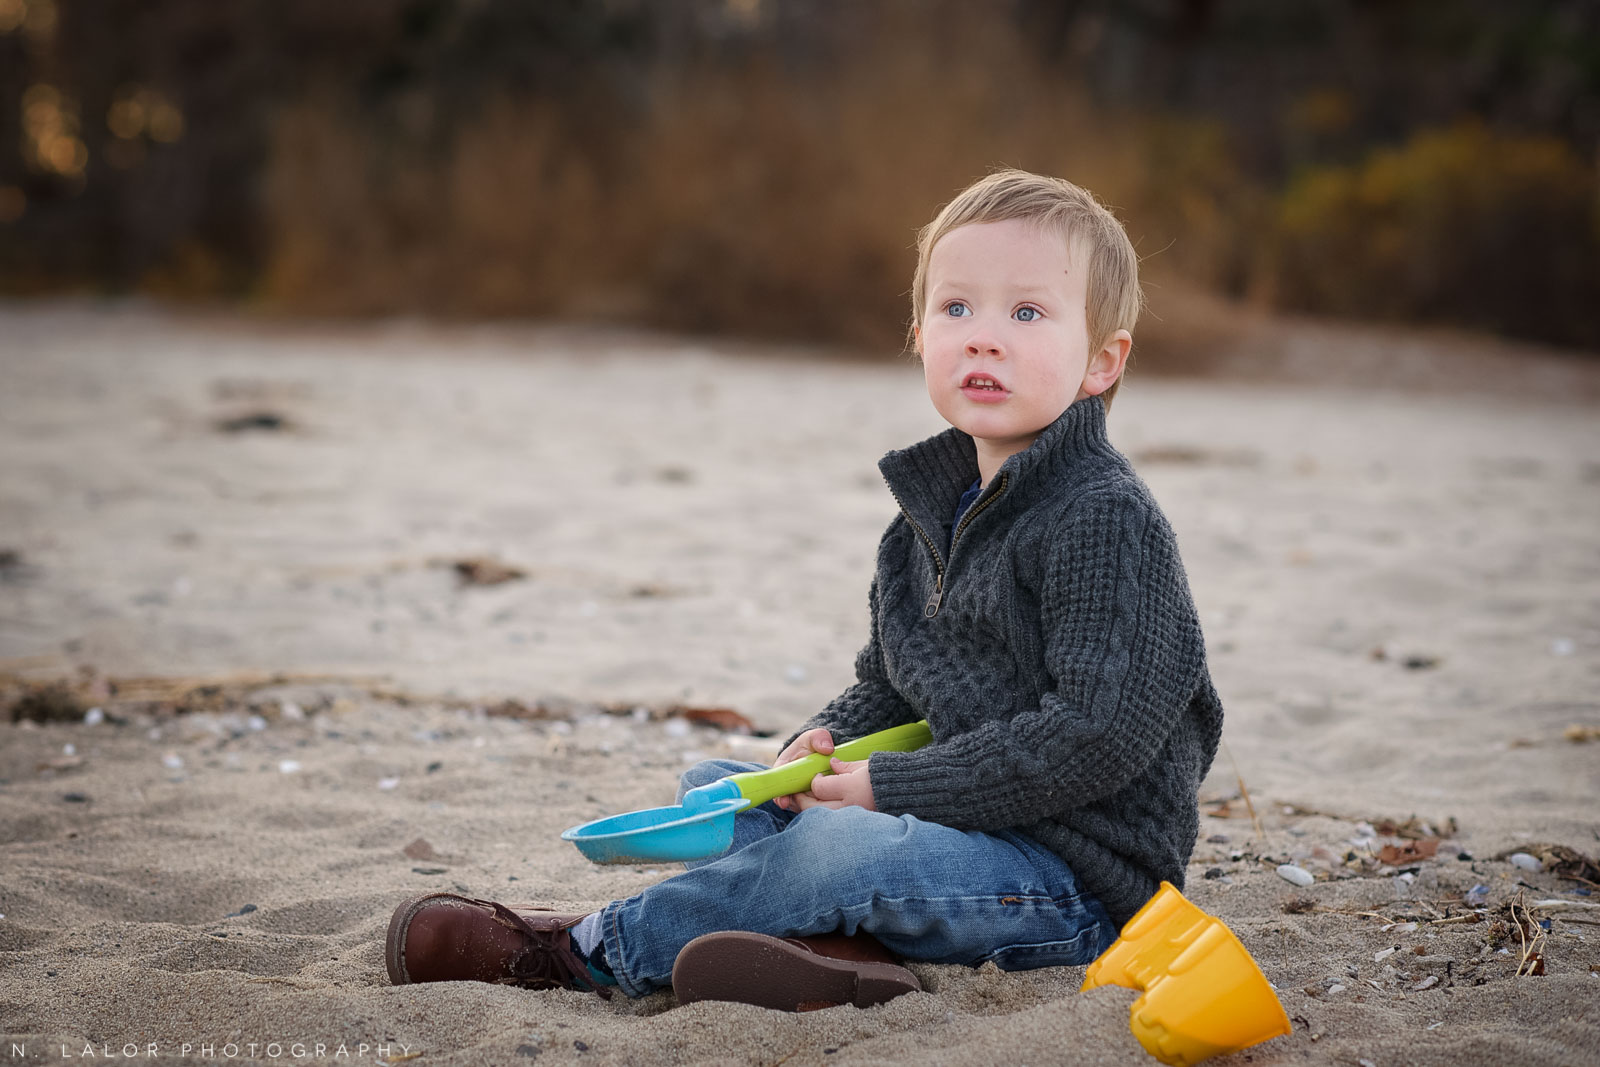 nlalor-photography-120613-styled-boy-winter-beach-session-old-greenwich-2.jpg